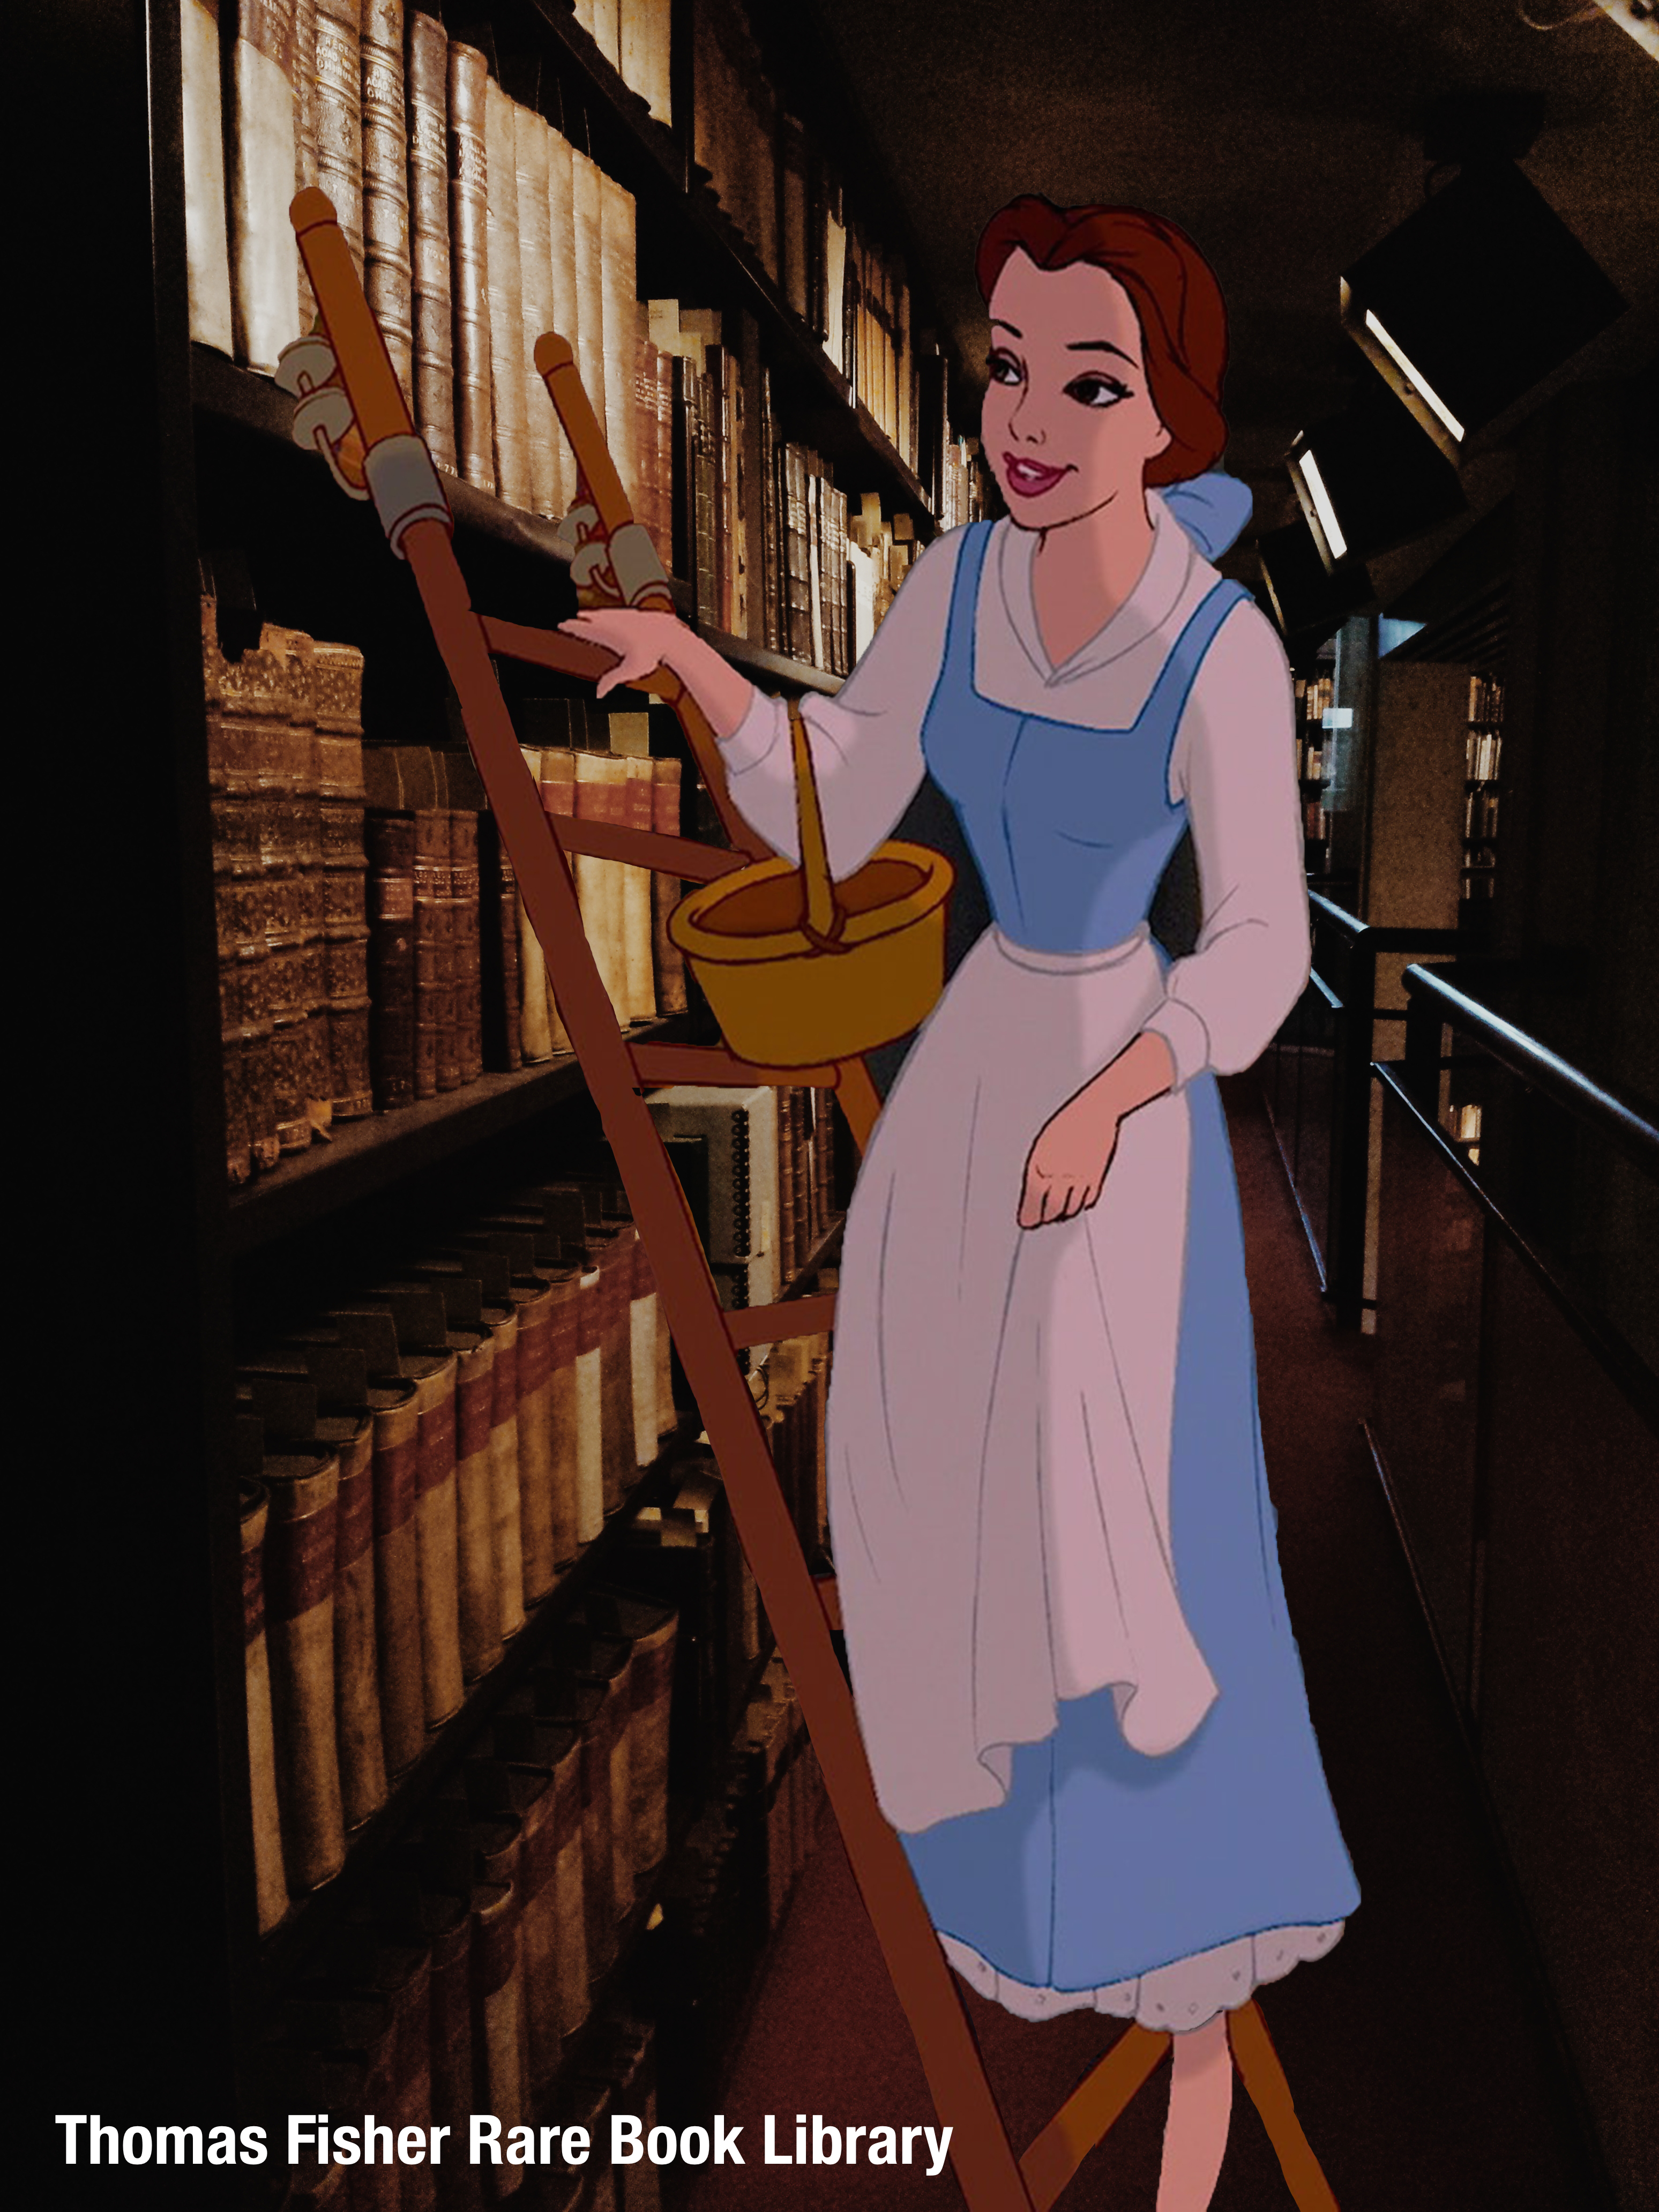 An old bookshelf in the Thomas Fisher Library. An image of Belle from Beauty and the Beast has been imposed on top. She is on a ladder looking through the books.